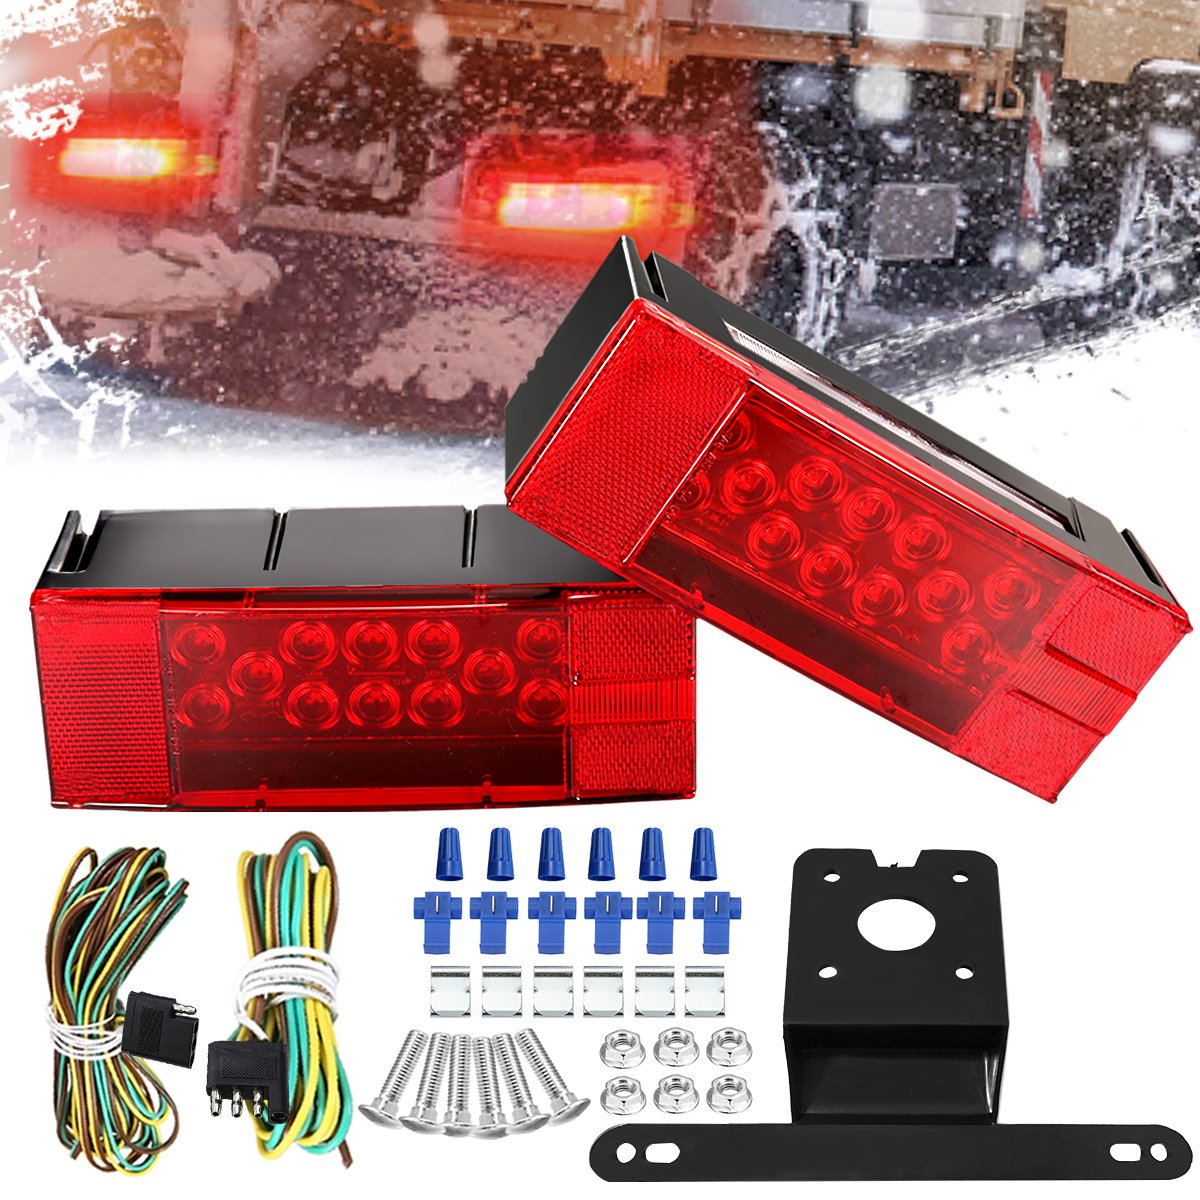 AMBOTHER Submersible Trailer Light Kit Tail Stop Brake License-Plate Turn Running Marker Lights Rectangular Low Profile Light for RV Boat Truck Marine Universal Red DC12V,2PCS,3 Year Warranty by AMBOTHER